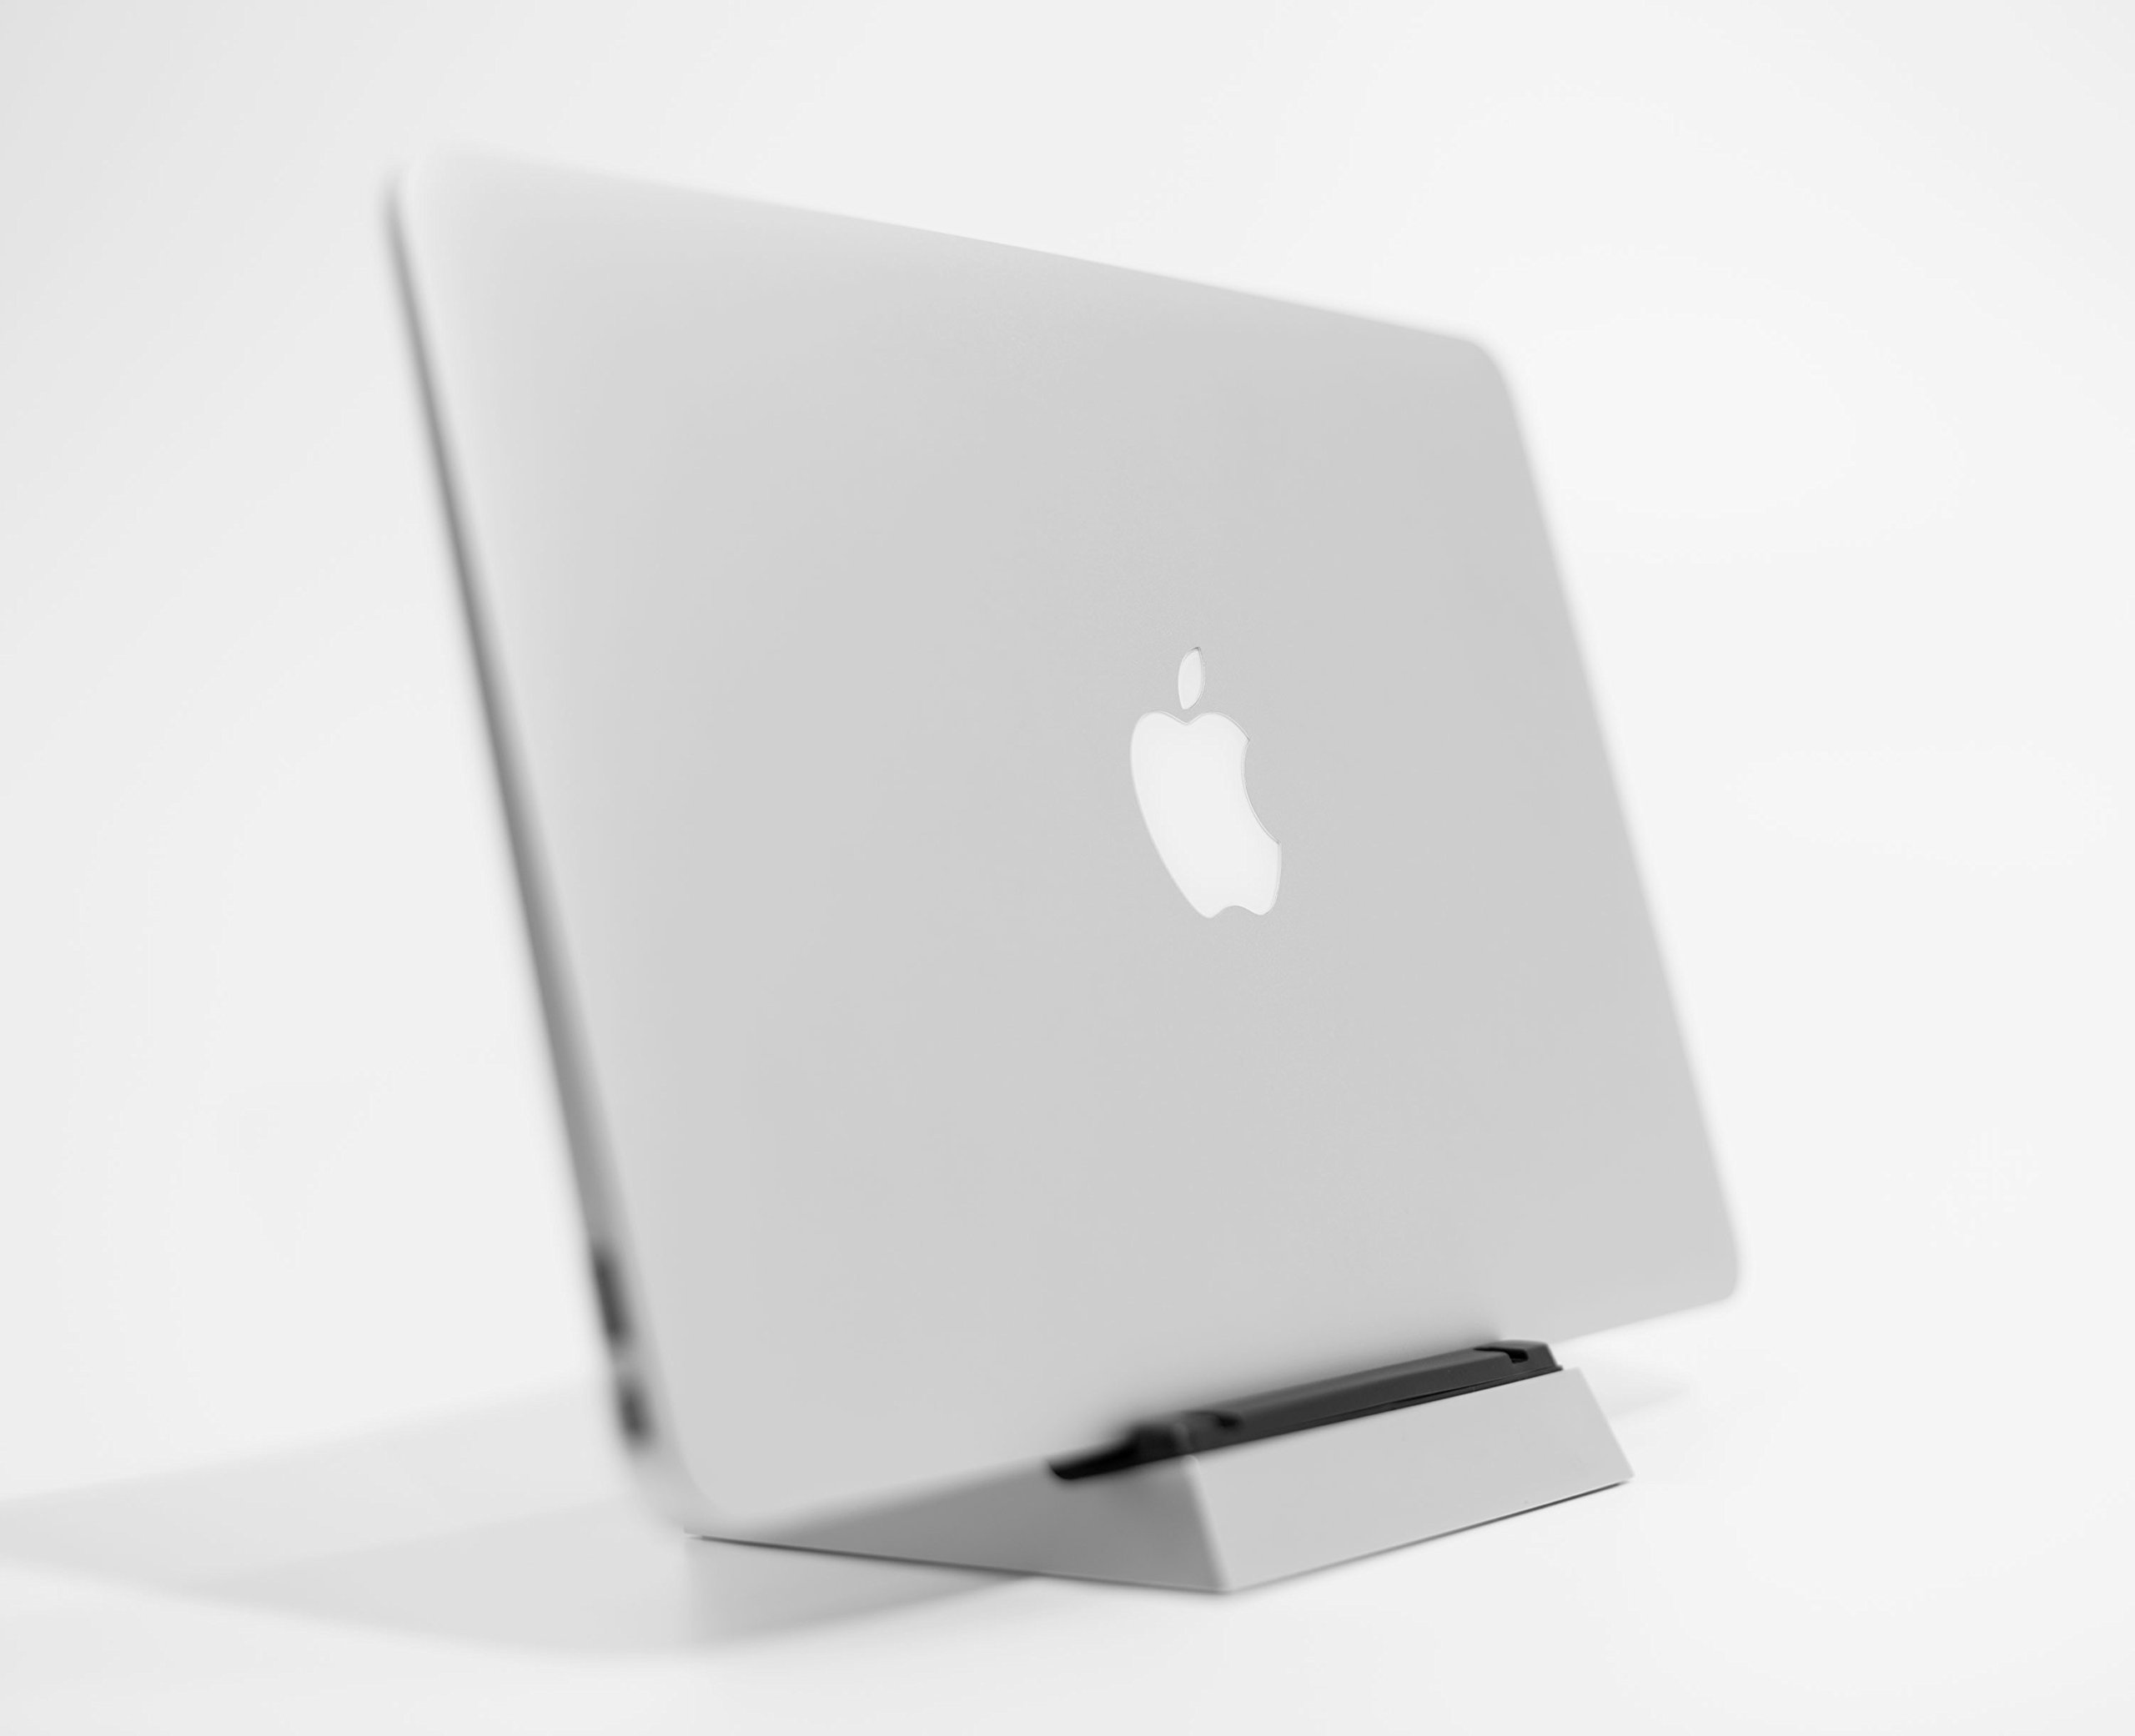 SVALT D2 High-Performance Cooling Dock for Apple Retina MacBook Pro and MacBook Air laptops by SVALT (Image #4)